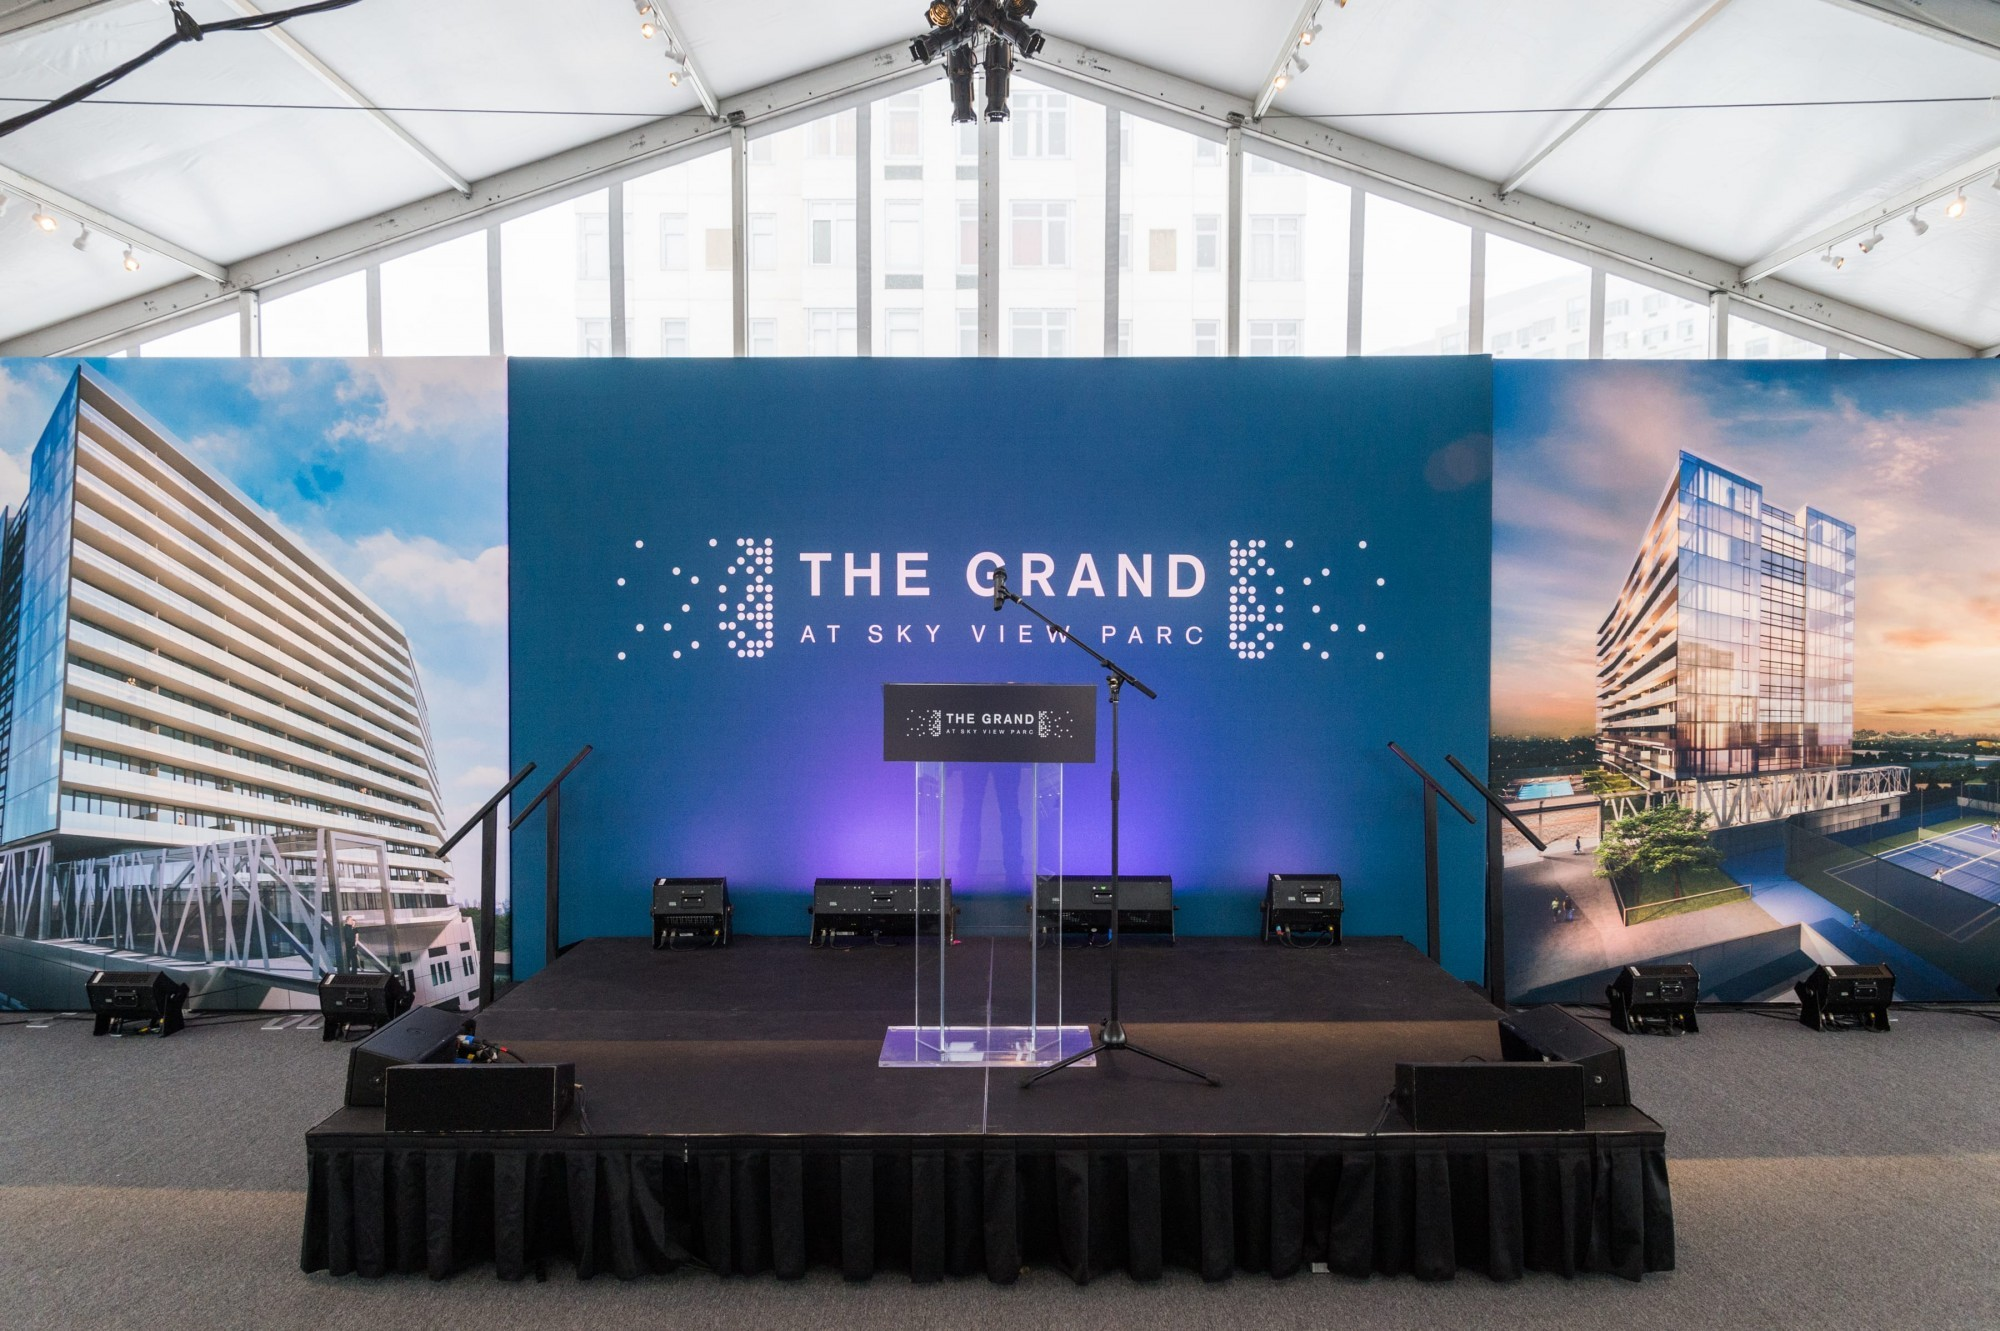 The Grand at Skyview Parc